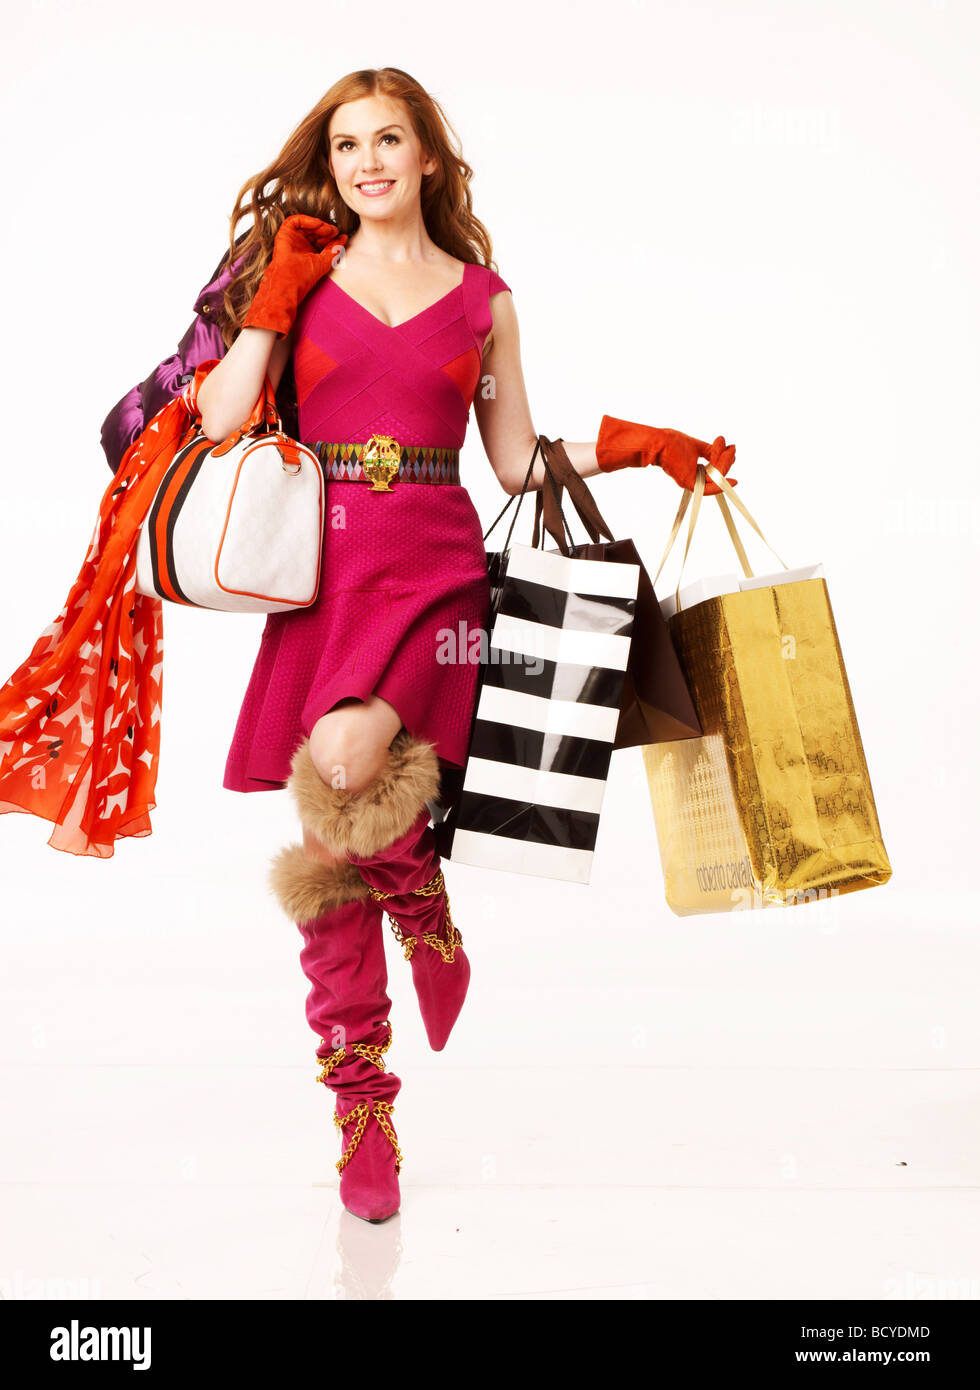 Confessions of a shopaholic Year   2009 Director   P.J. Hogan Isla Fisher  Based upon the book of Sophie Kinsella 61a4e901a9